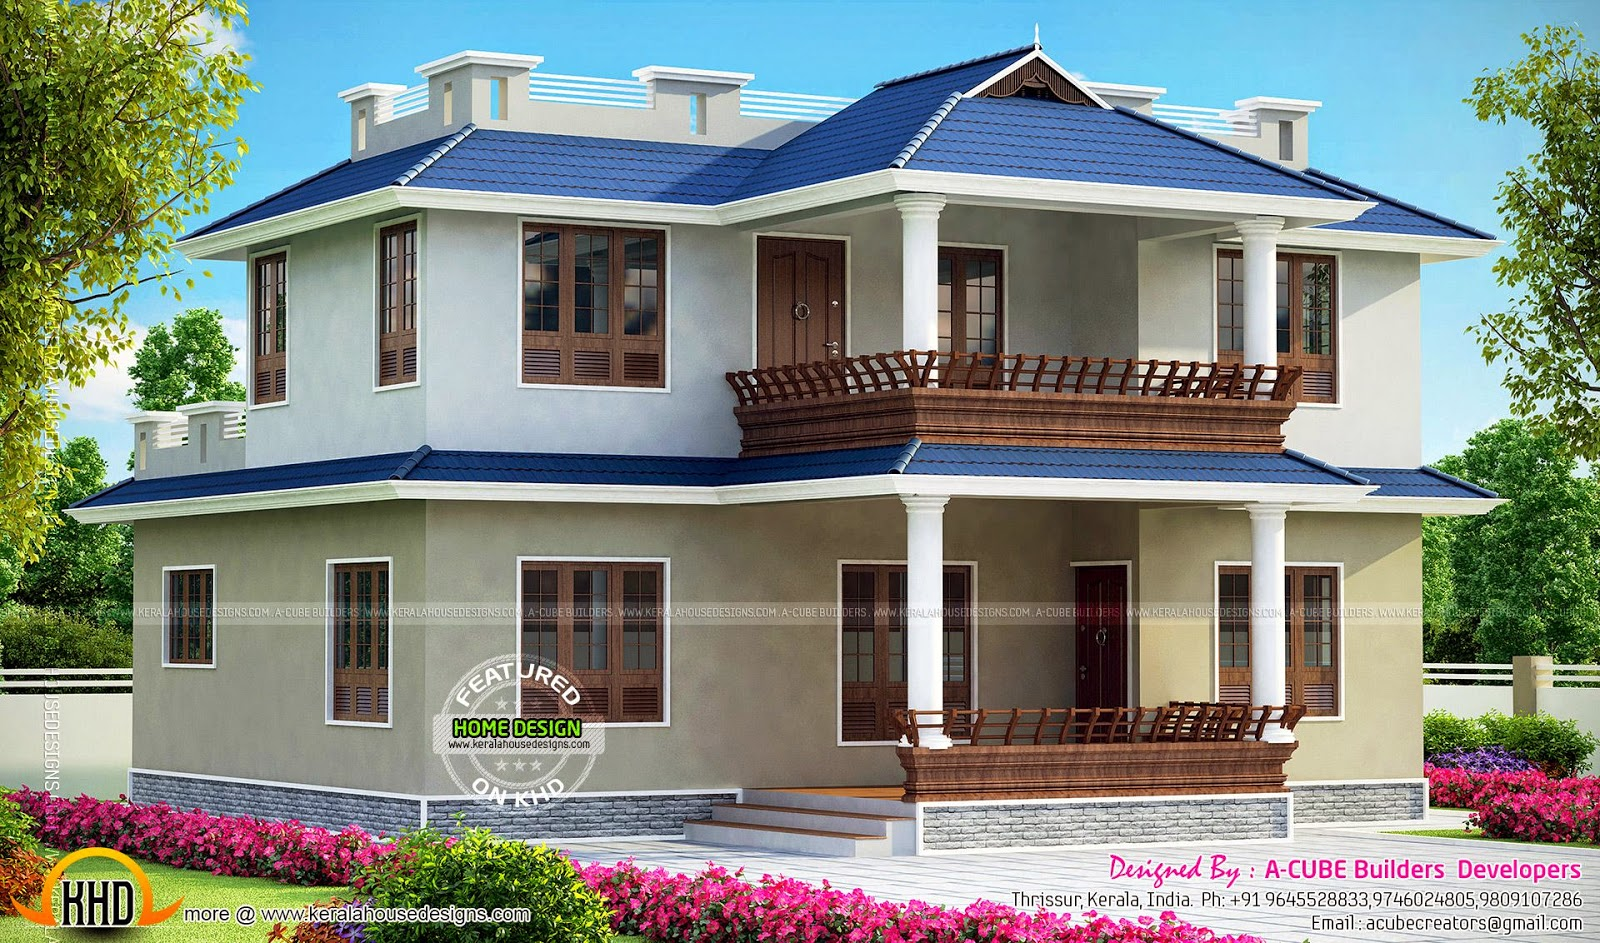 3 bedroom double storied kerala home kerala home design and floor plans. Black Bedroom Furniture Sets. Home Design Ideas